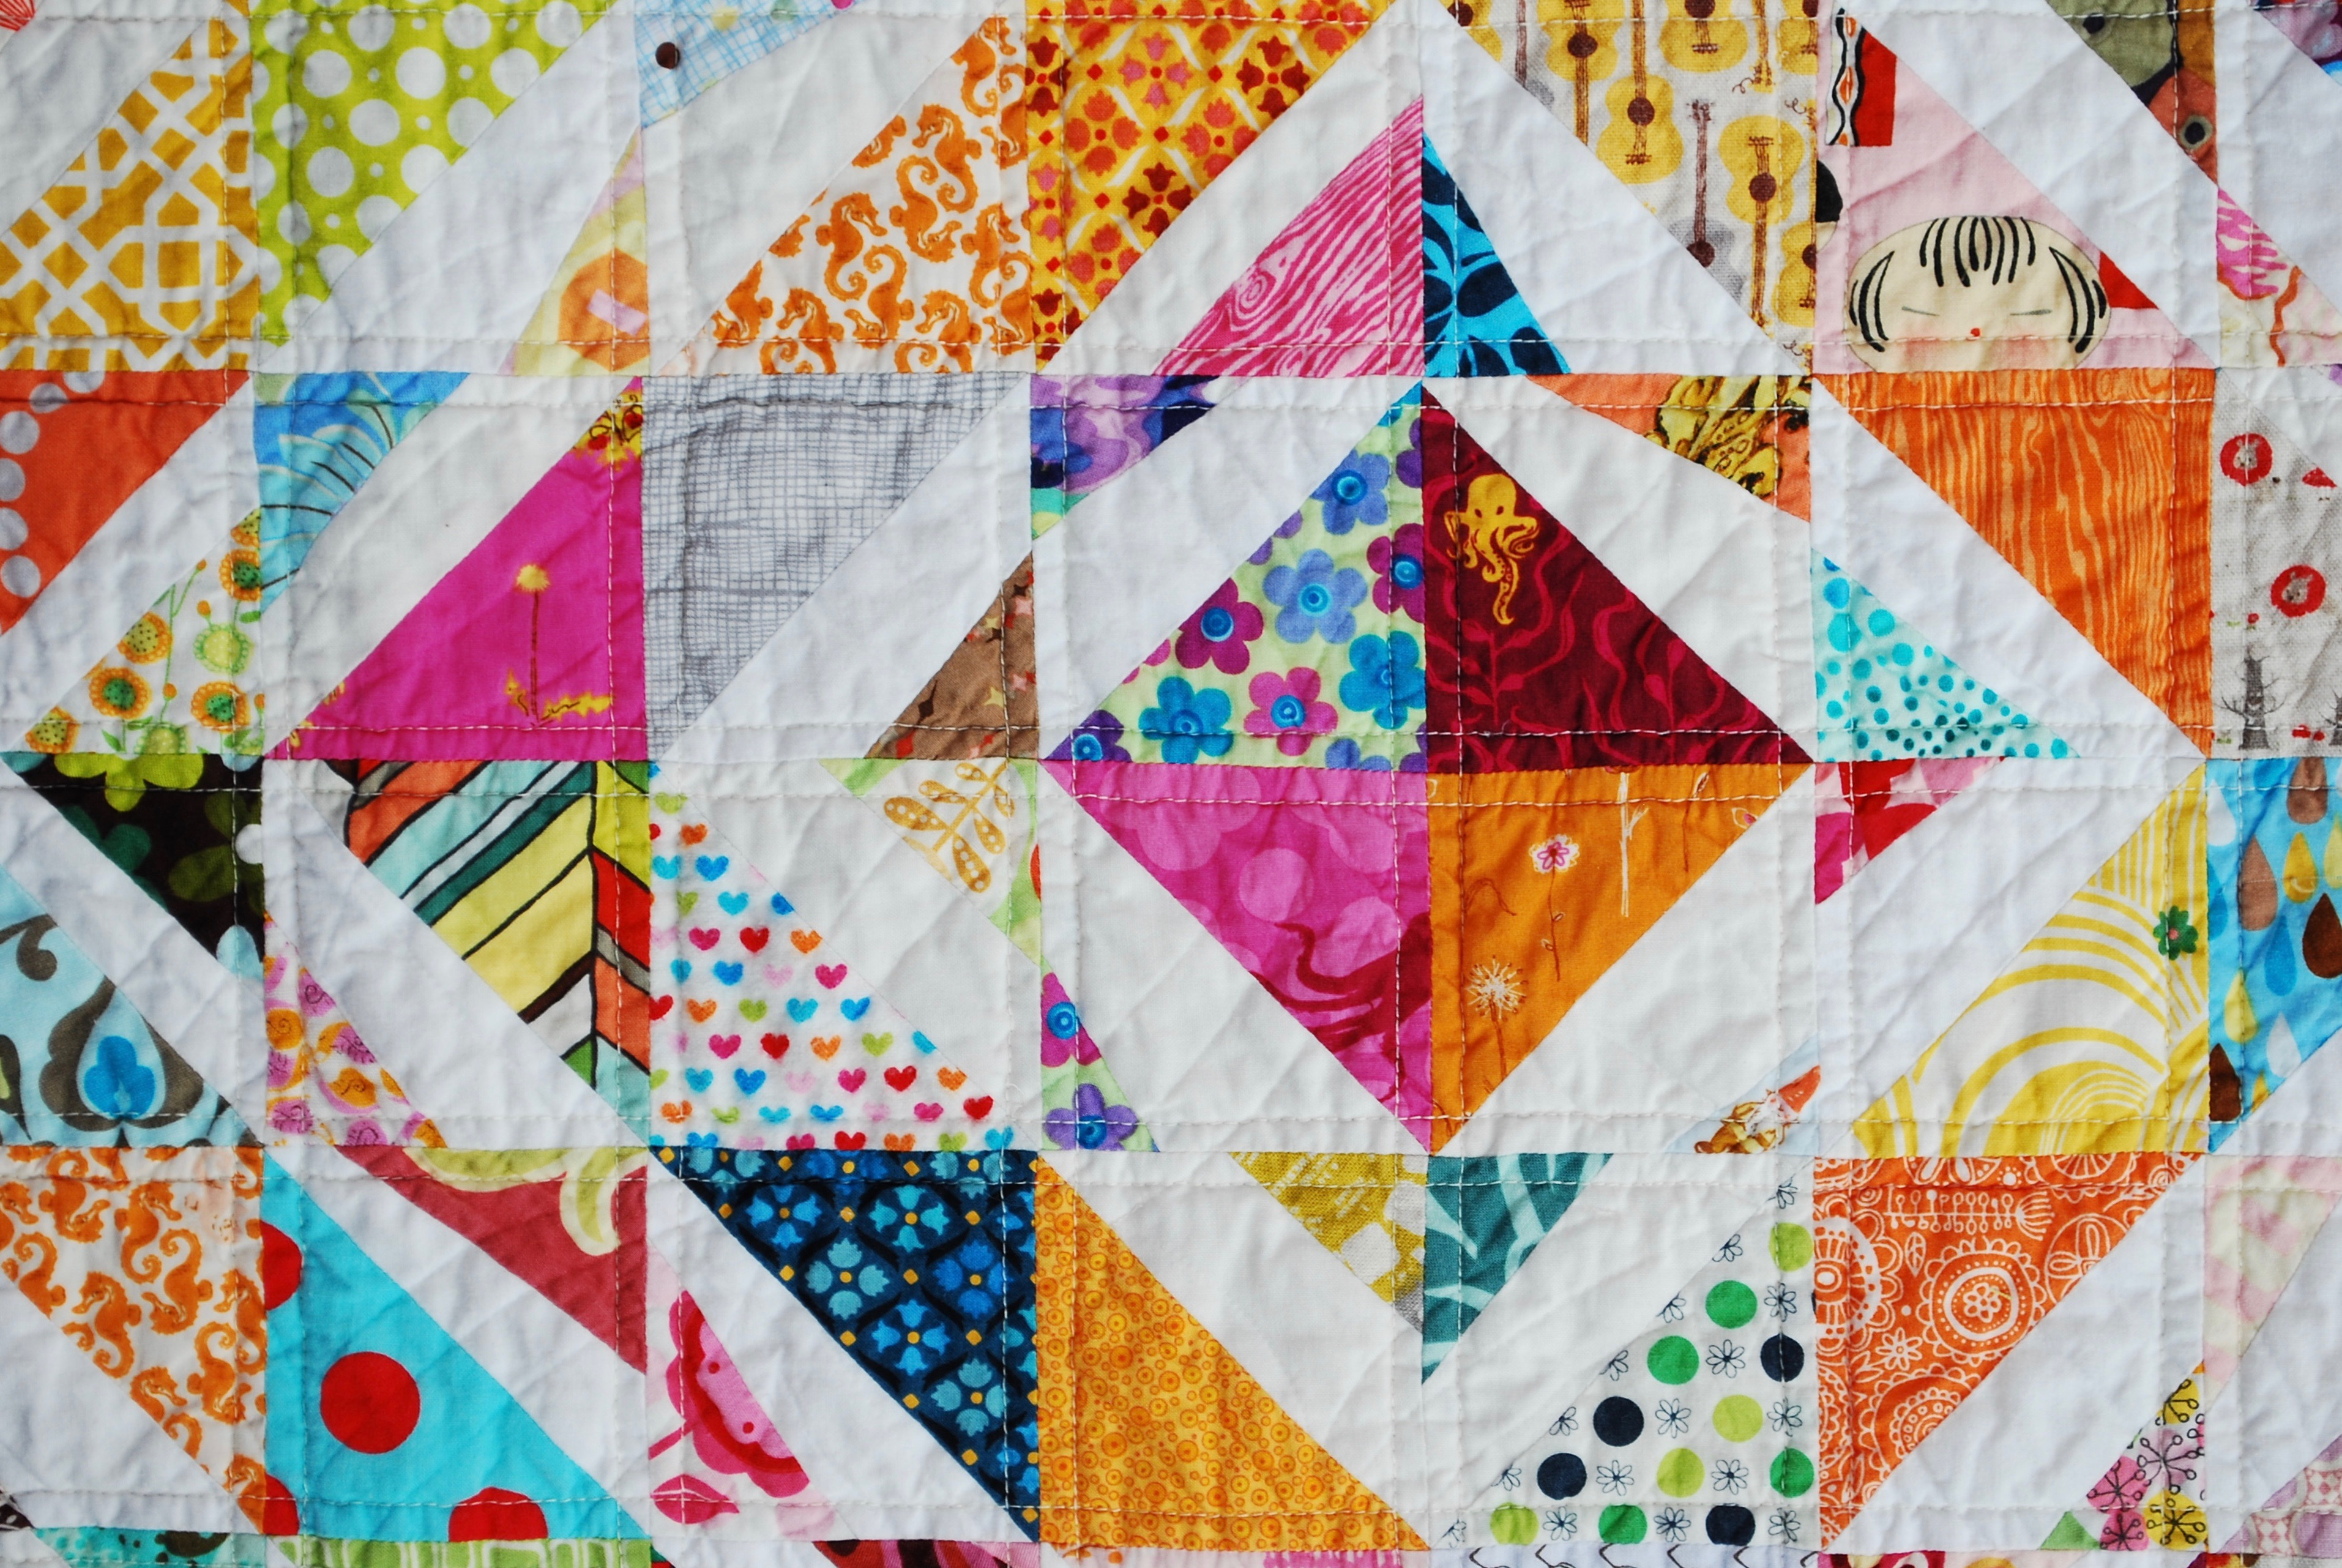 sew katie did | Seattle Modern Quilting Studio and Workshops | Double-Trouble Quilt